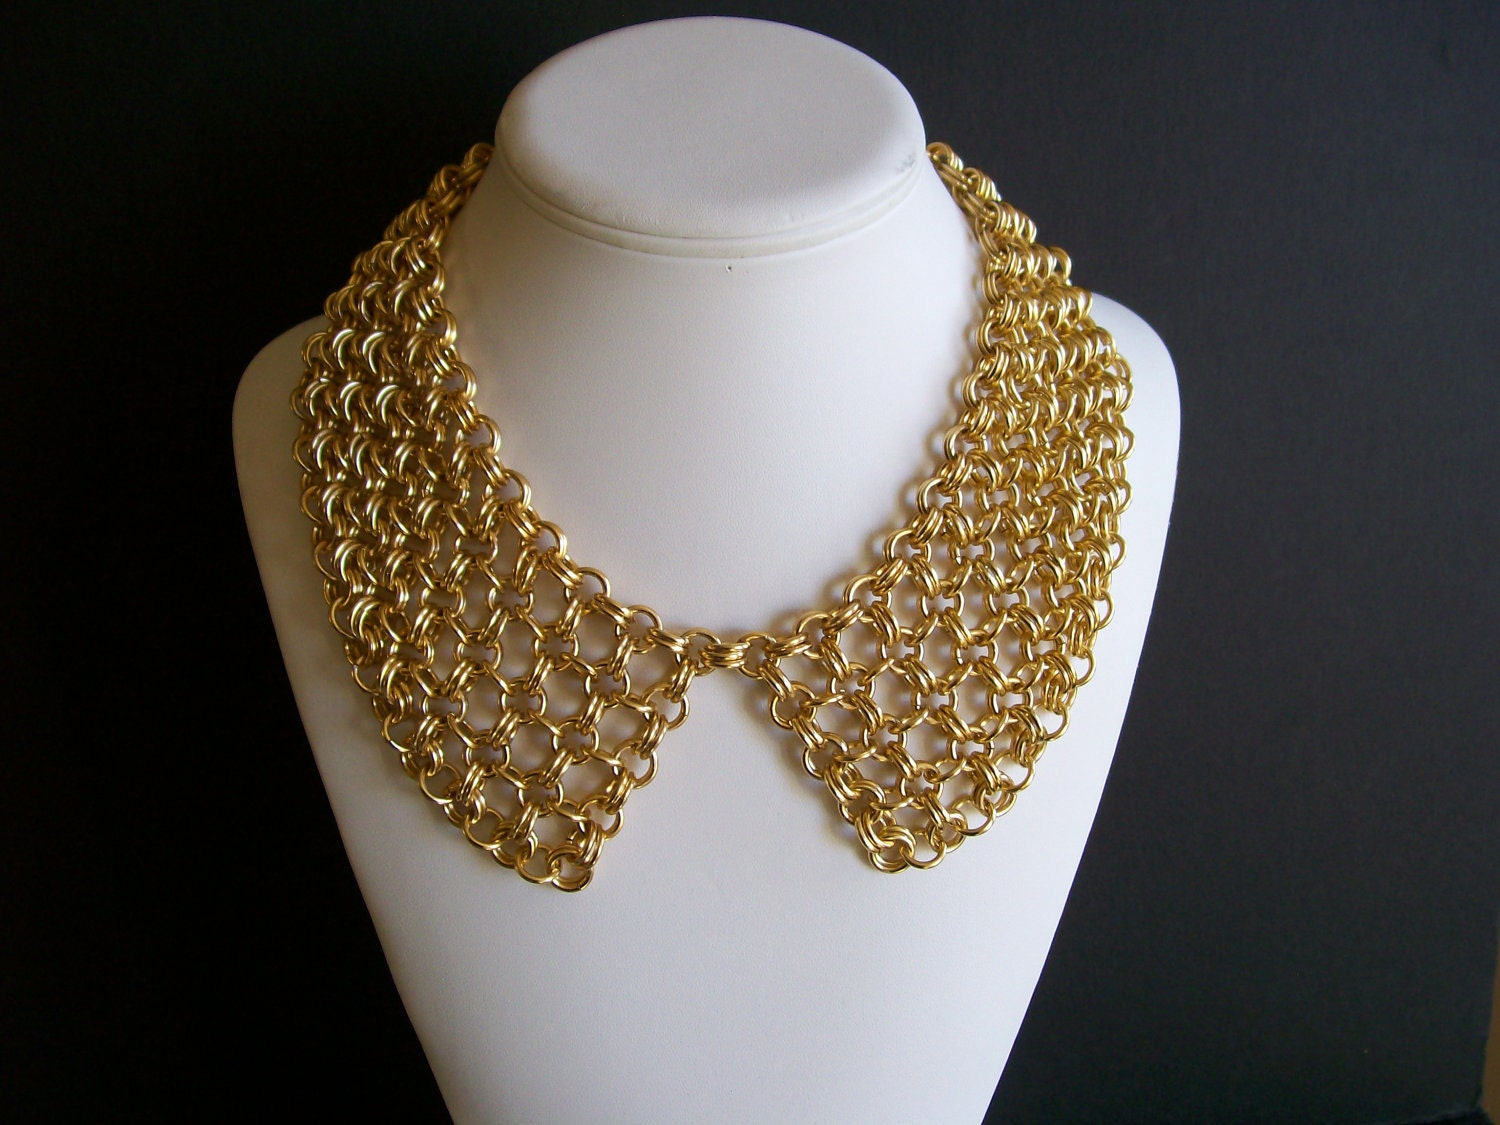 Unique GOLD CHAIN PAN COLLAR NECKLACE on The Hunt SF26